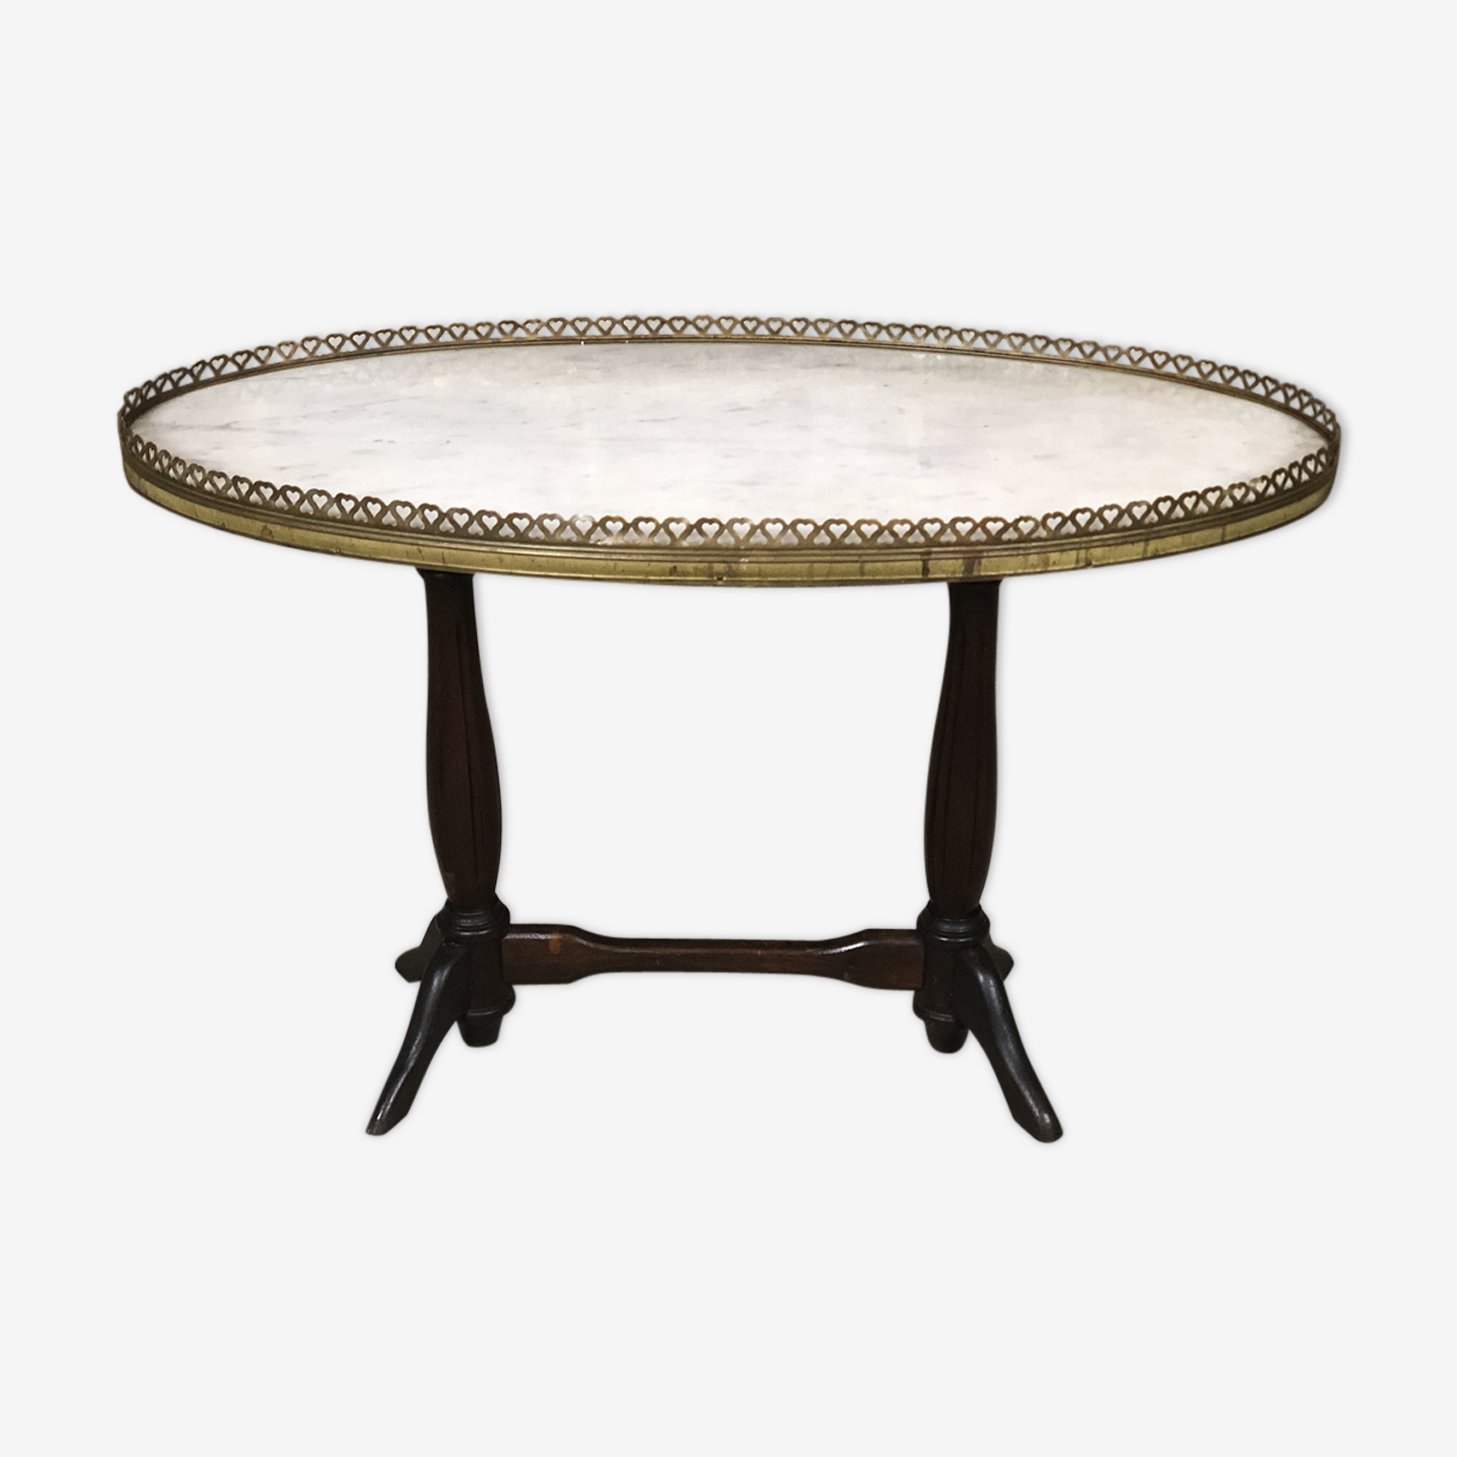 On foot double ringed gallery brass coffee table, marble top